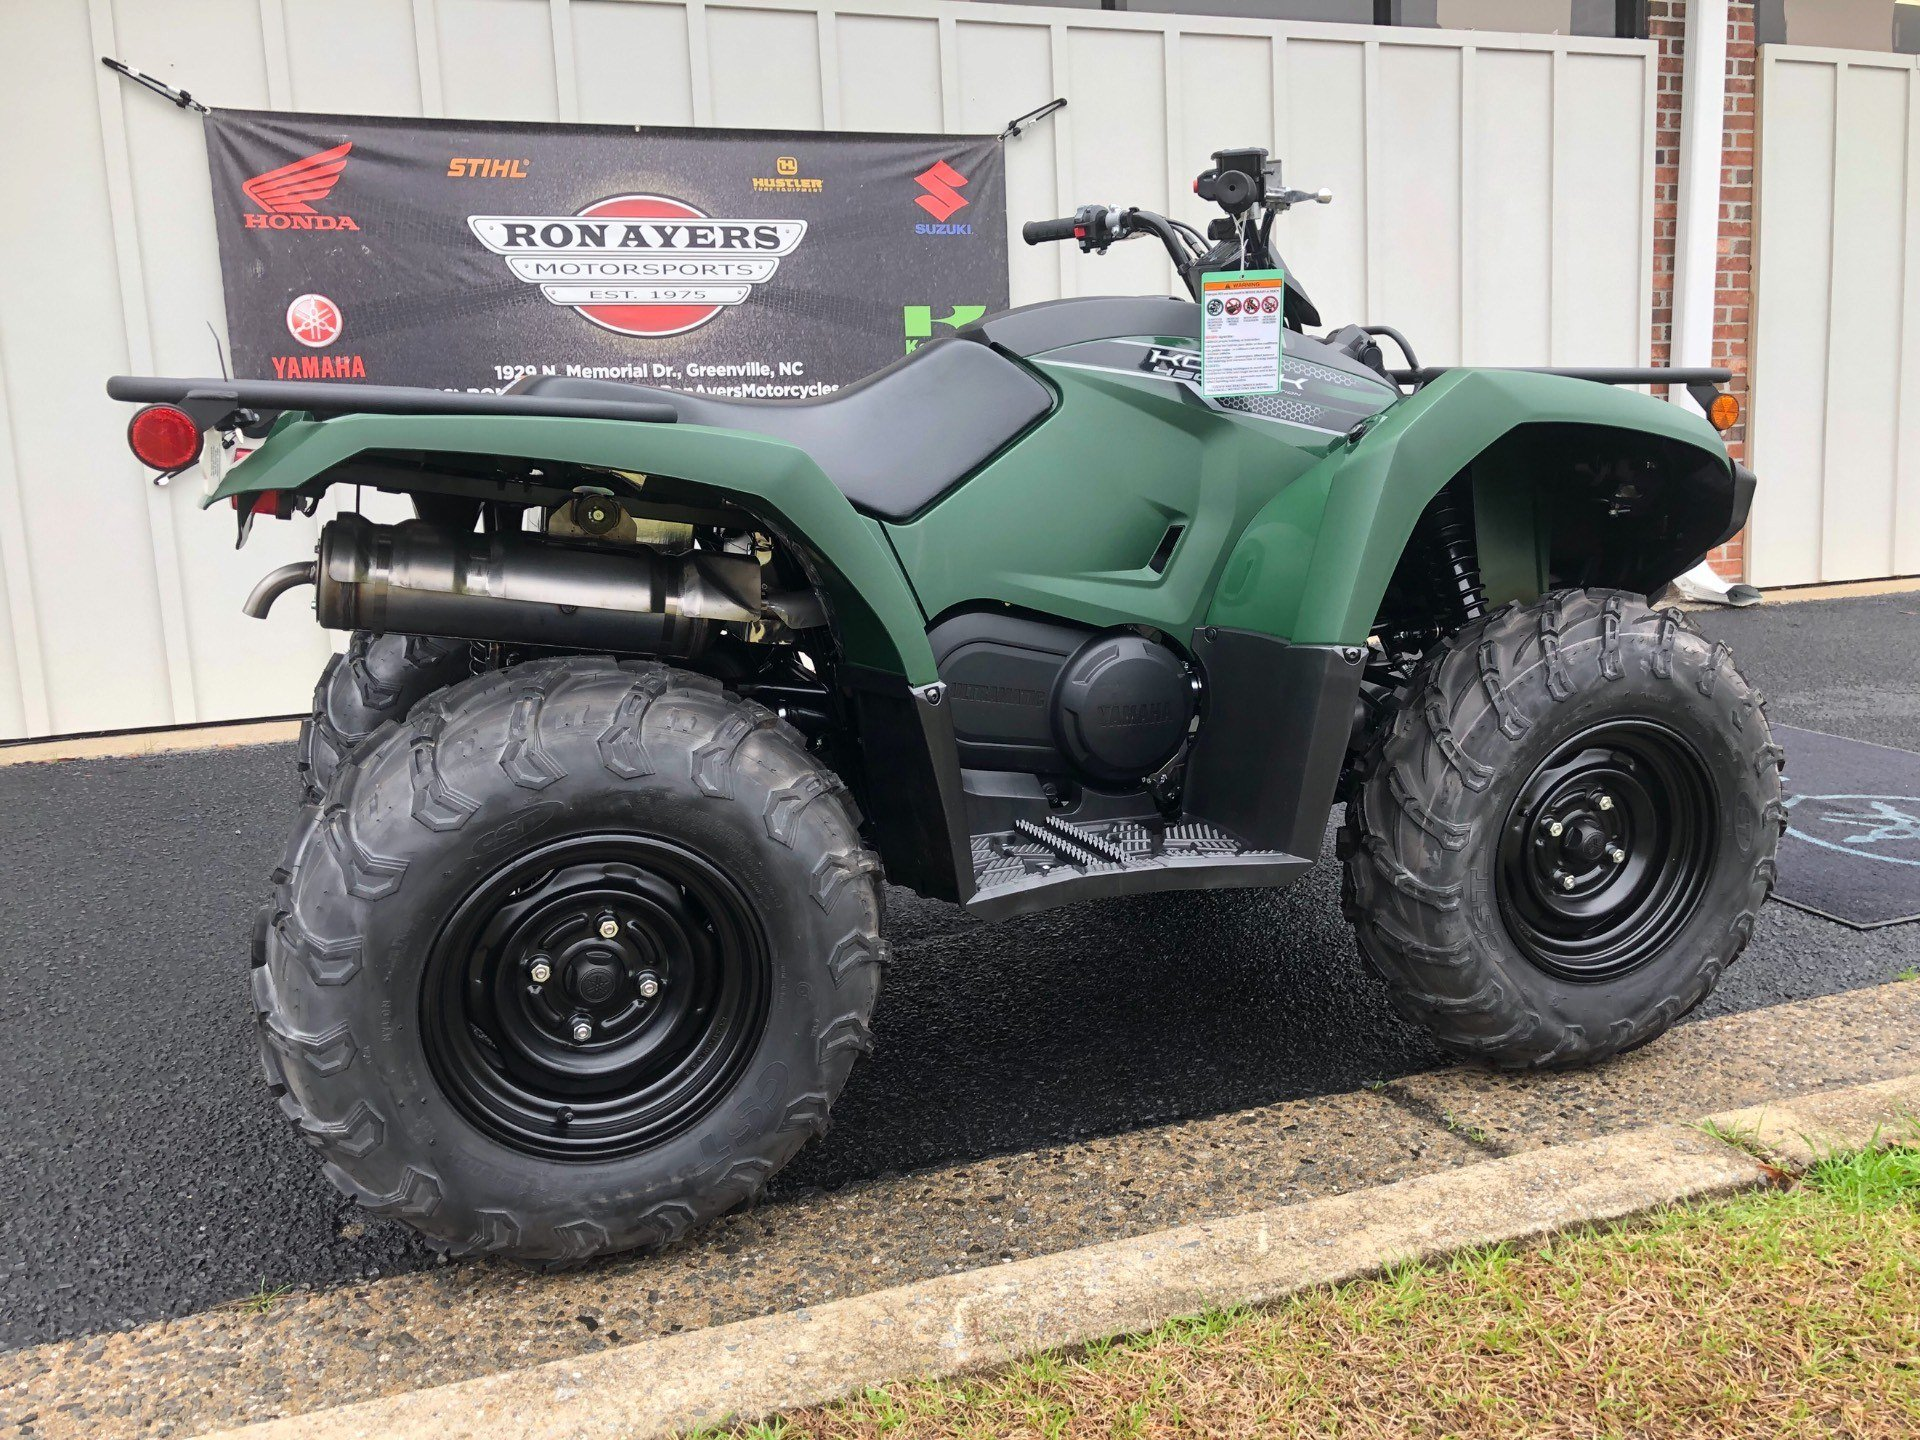 2019 Yamaha Kodiak 450 in Greenville, North Carolina - Photo 14